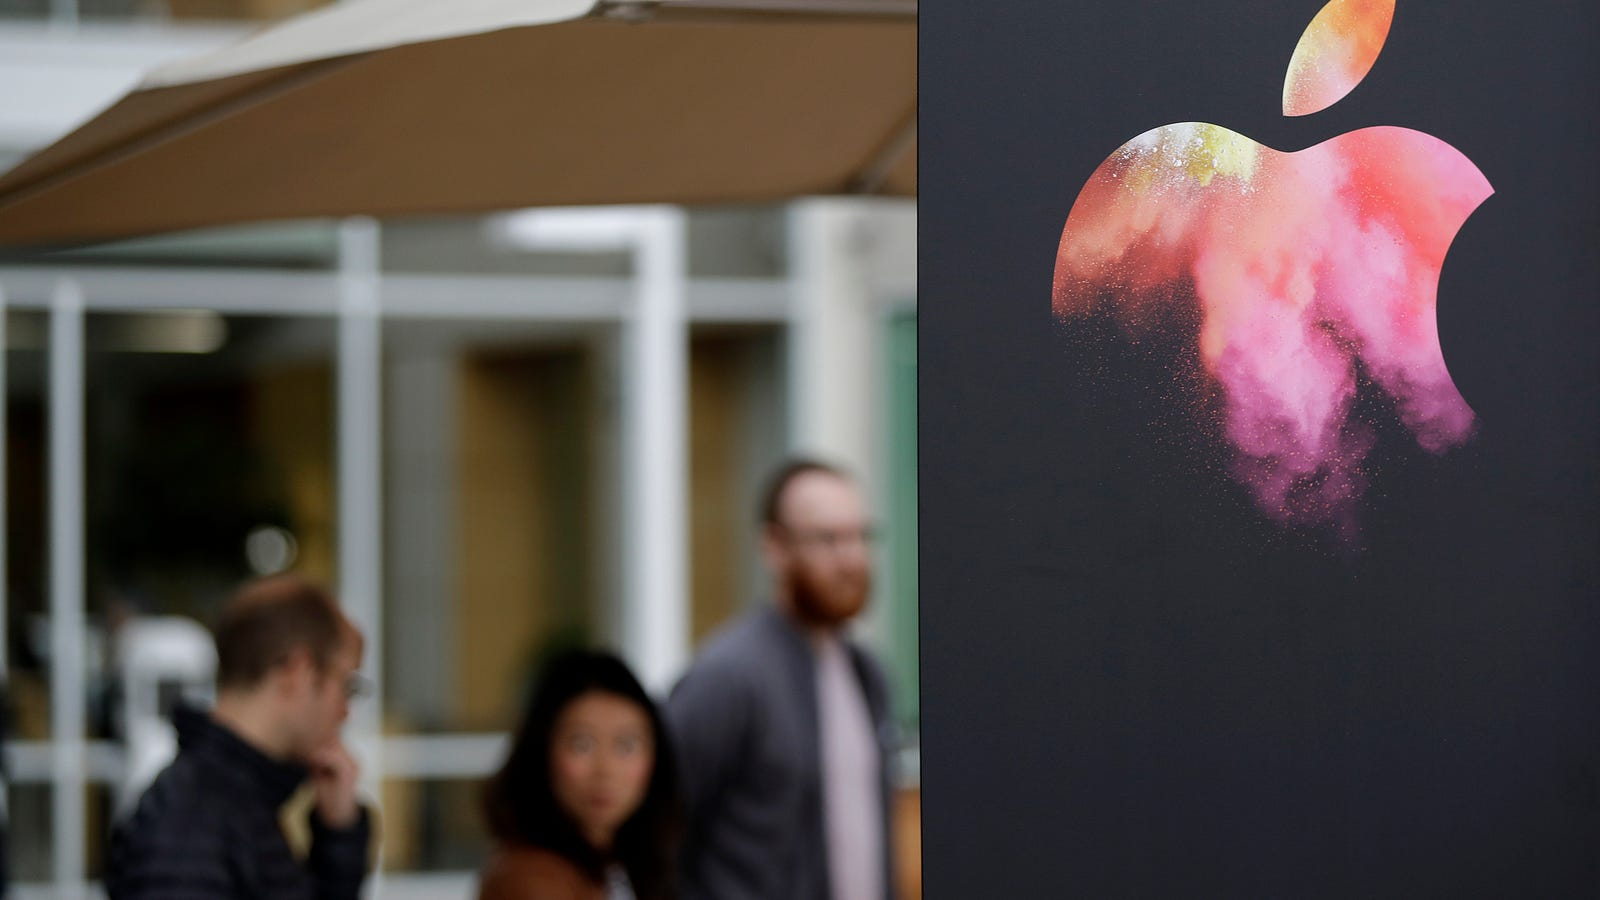 gizmodo.com - William Turton - Leaked Document Details Apple Employee Injuries, Hints At Secretive New Products